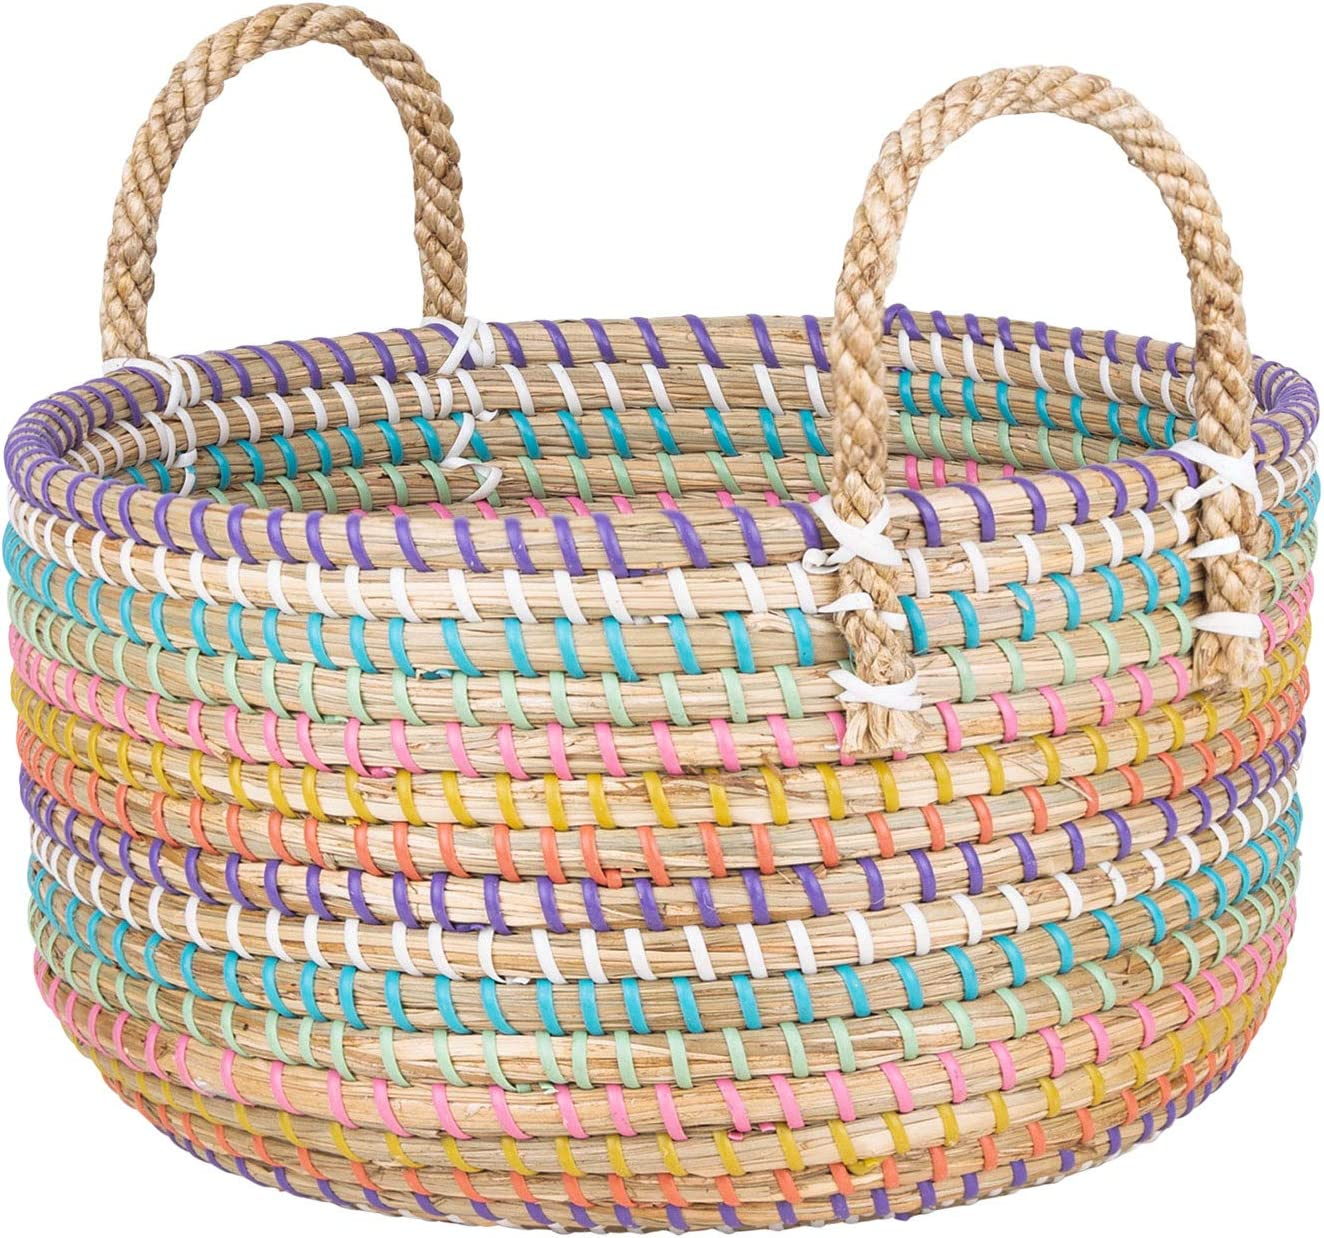 Modern New popularity Max 66% OFF Village Floor Basket for Throws Storage Blankets Pets